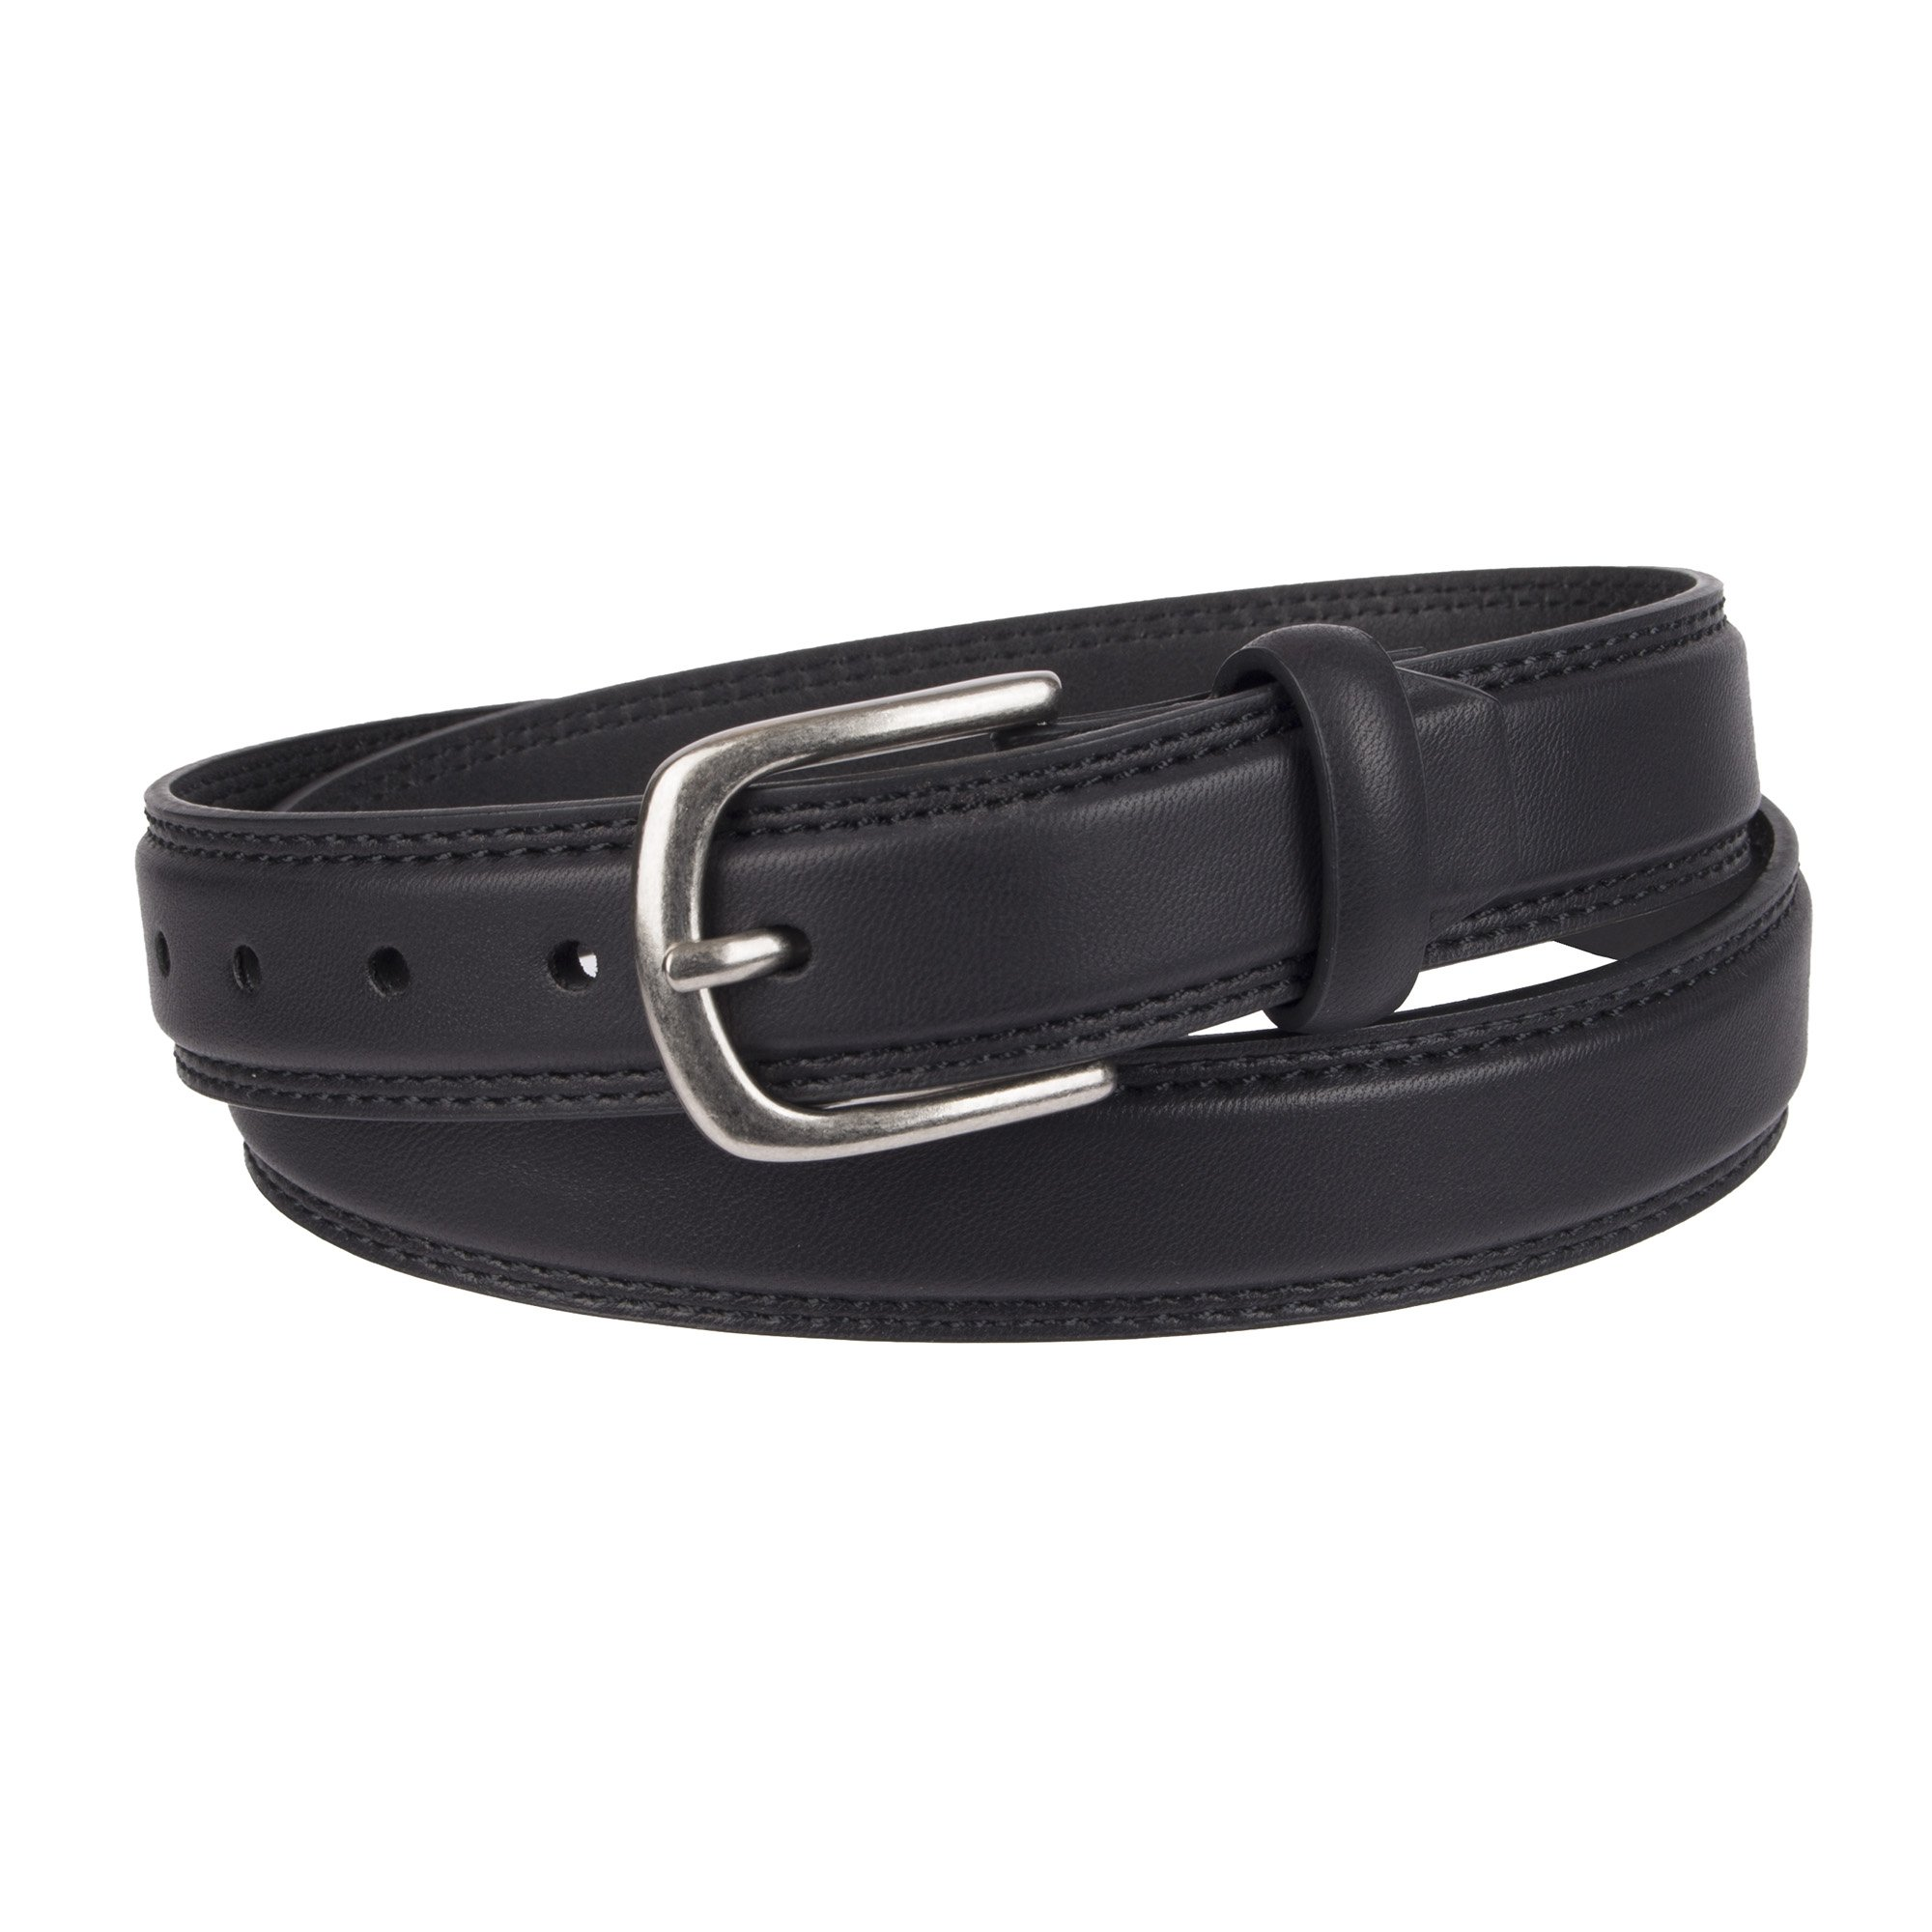 Dockers Big Boy's Casual Belt with Harness Buckle, black, Large